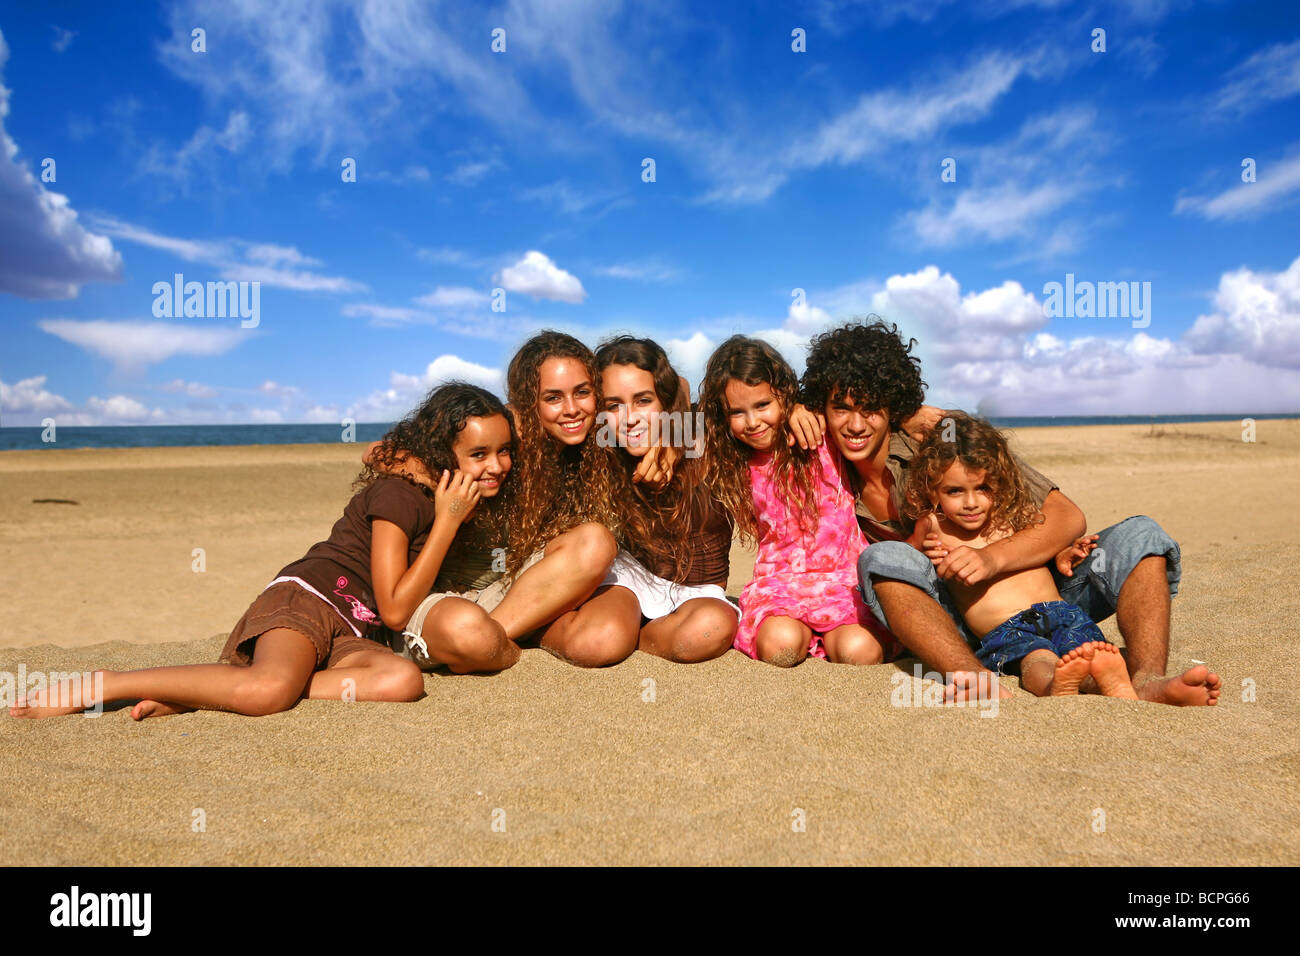 Family of 6 Happy Kids Smiling Outdoors at the Beach - Stock Image